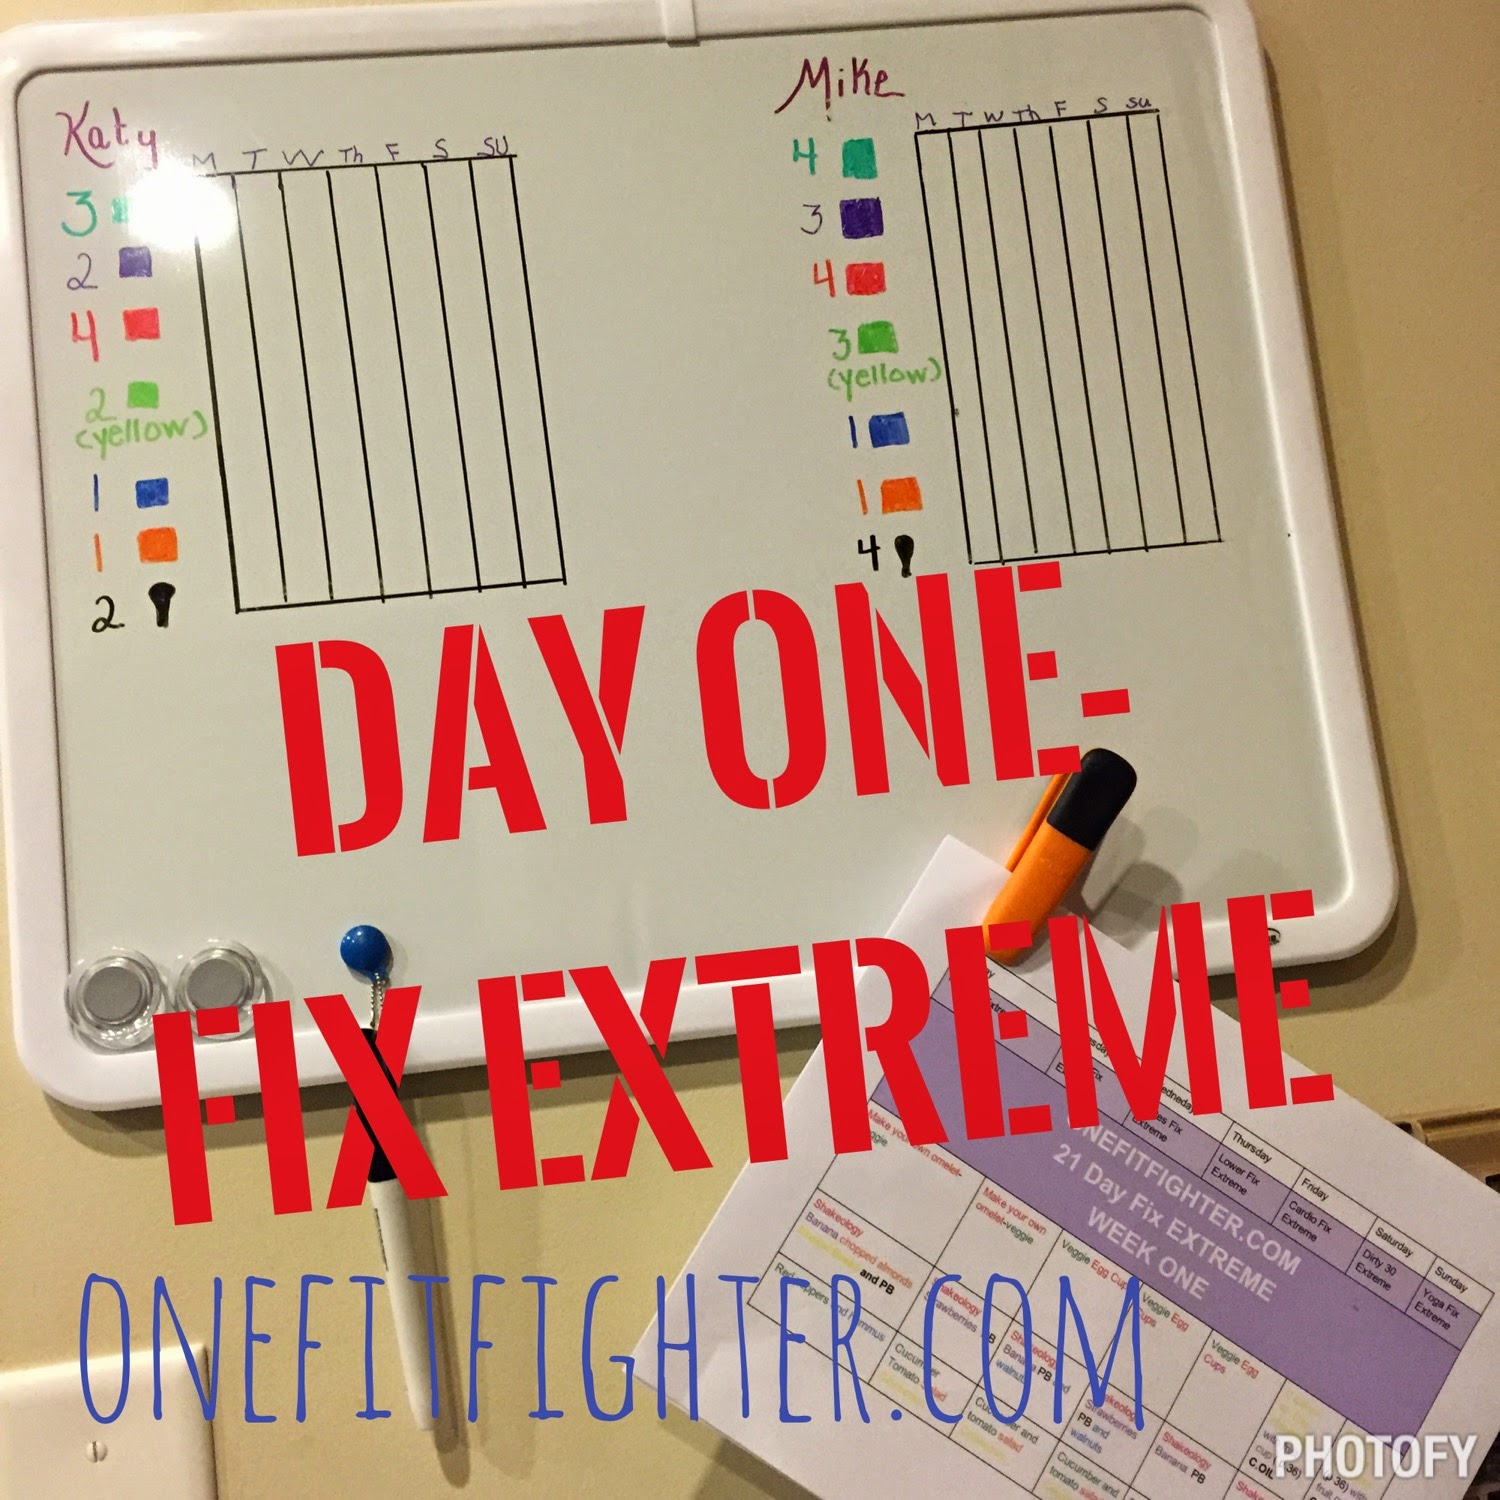 21 day fix extreme, 21 day fix, 21 day fix extreme testimonial, 21 day fix meal plans